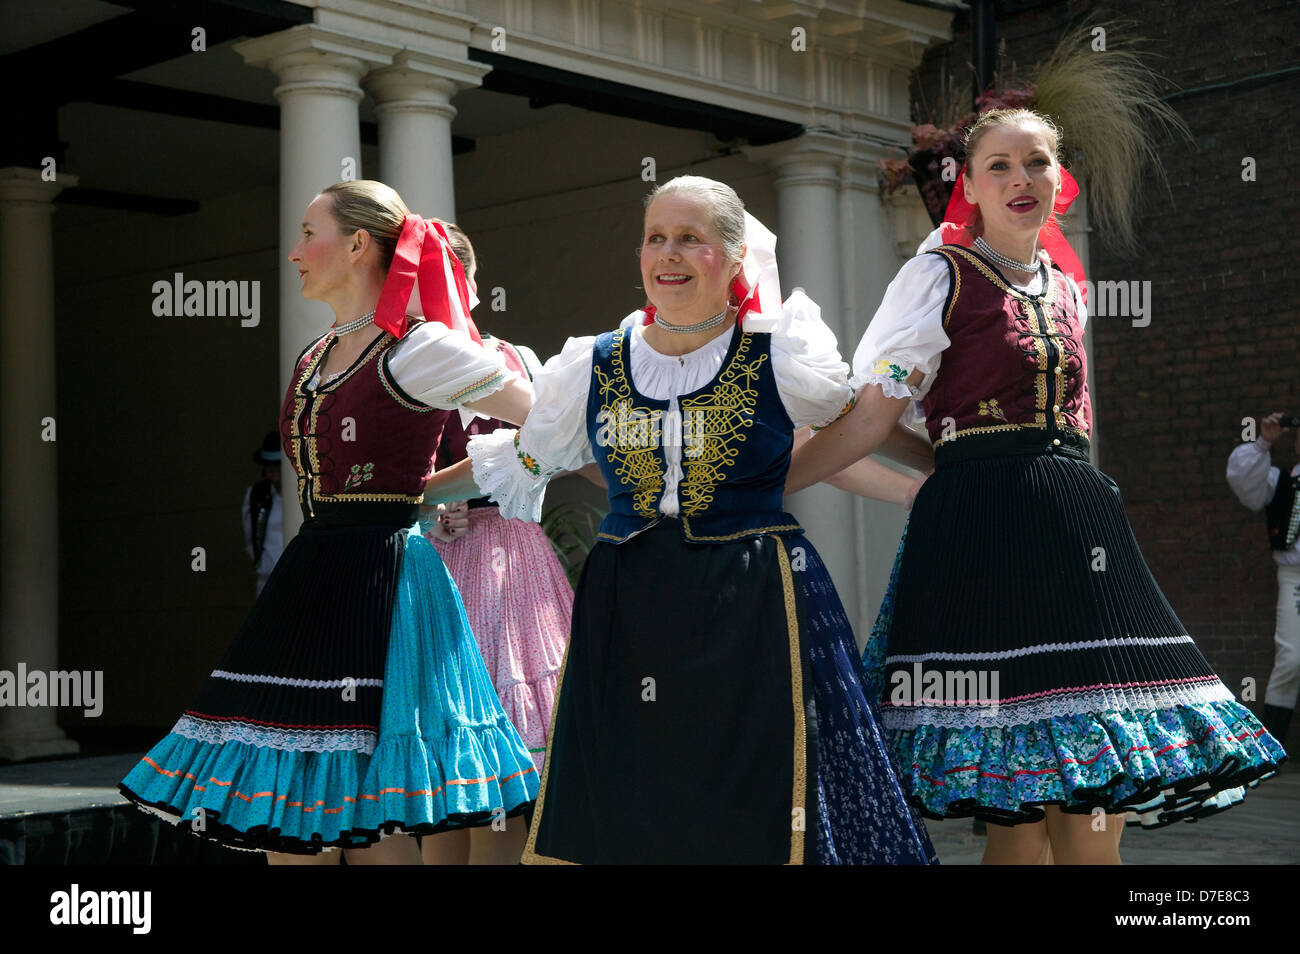 Slovakian Polish traditional dancers - Stock Image